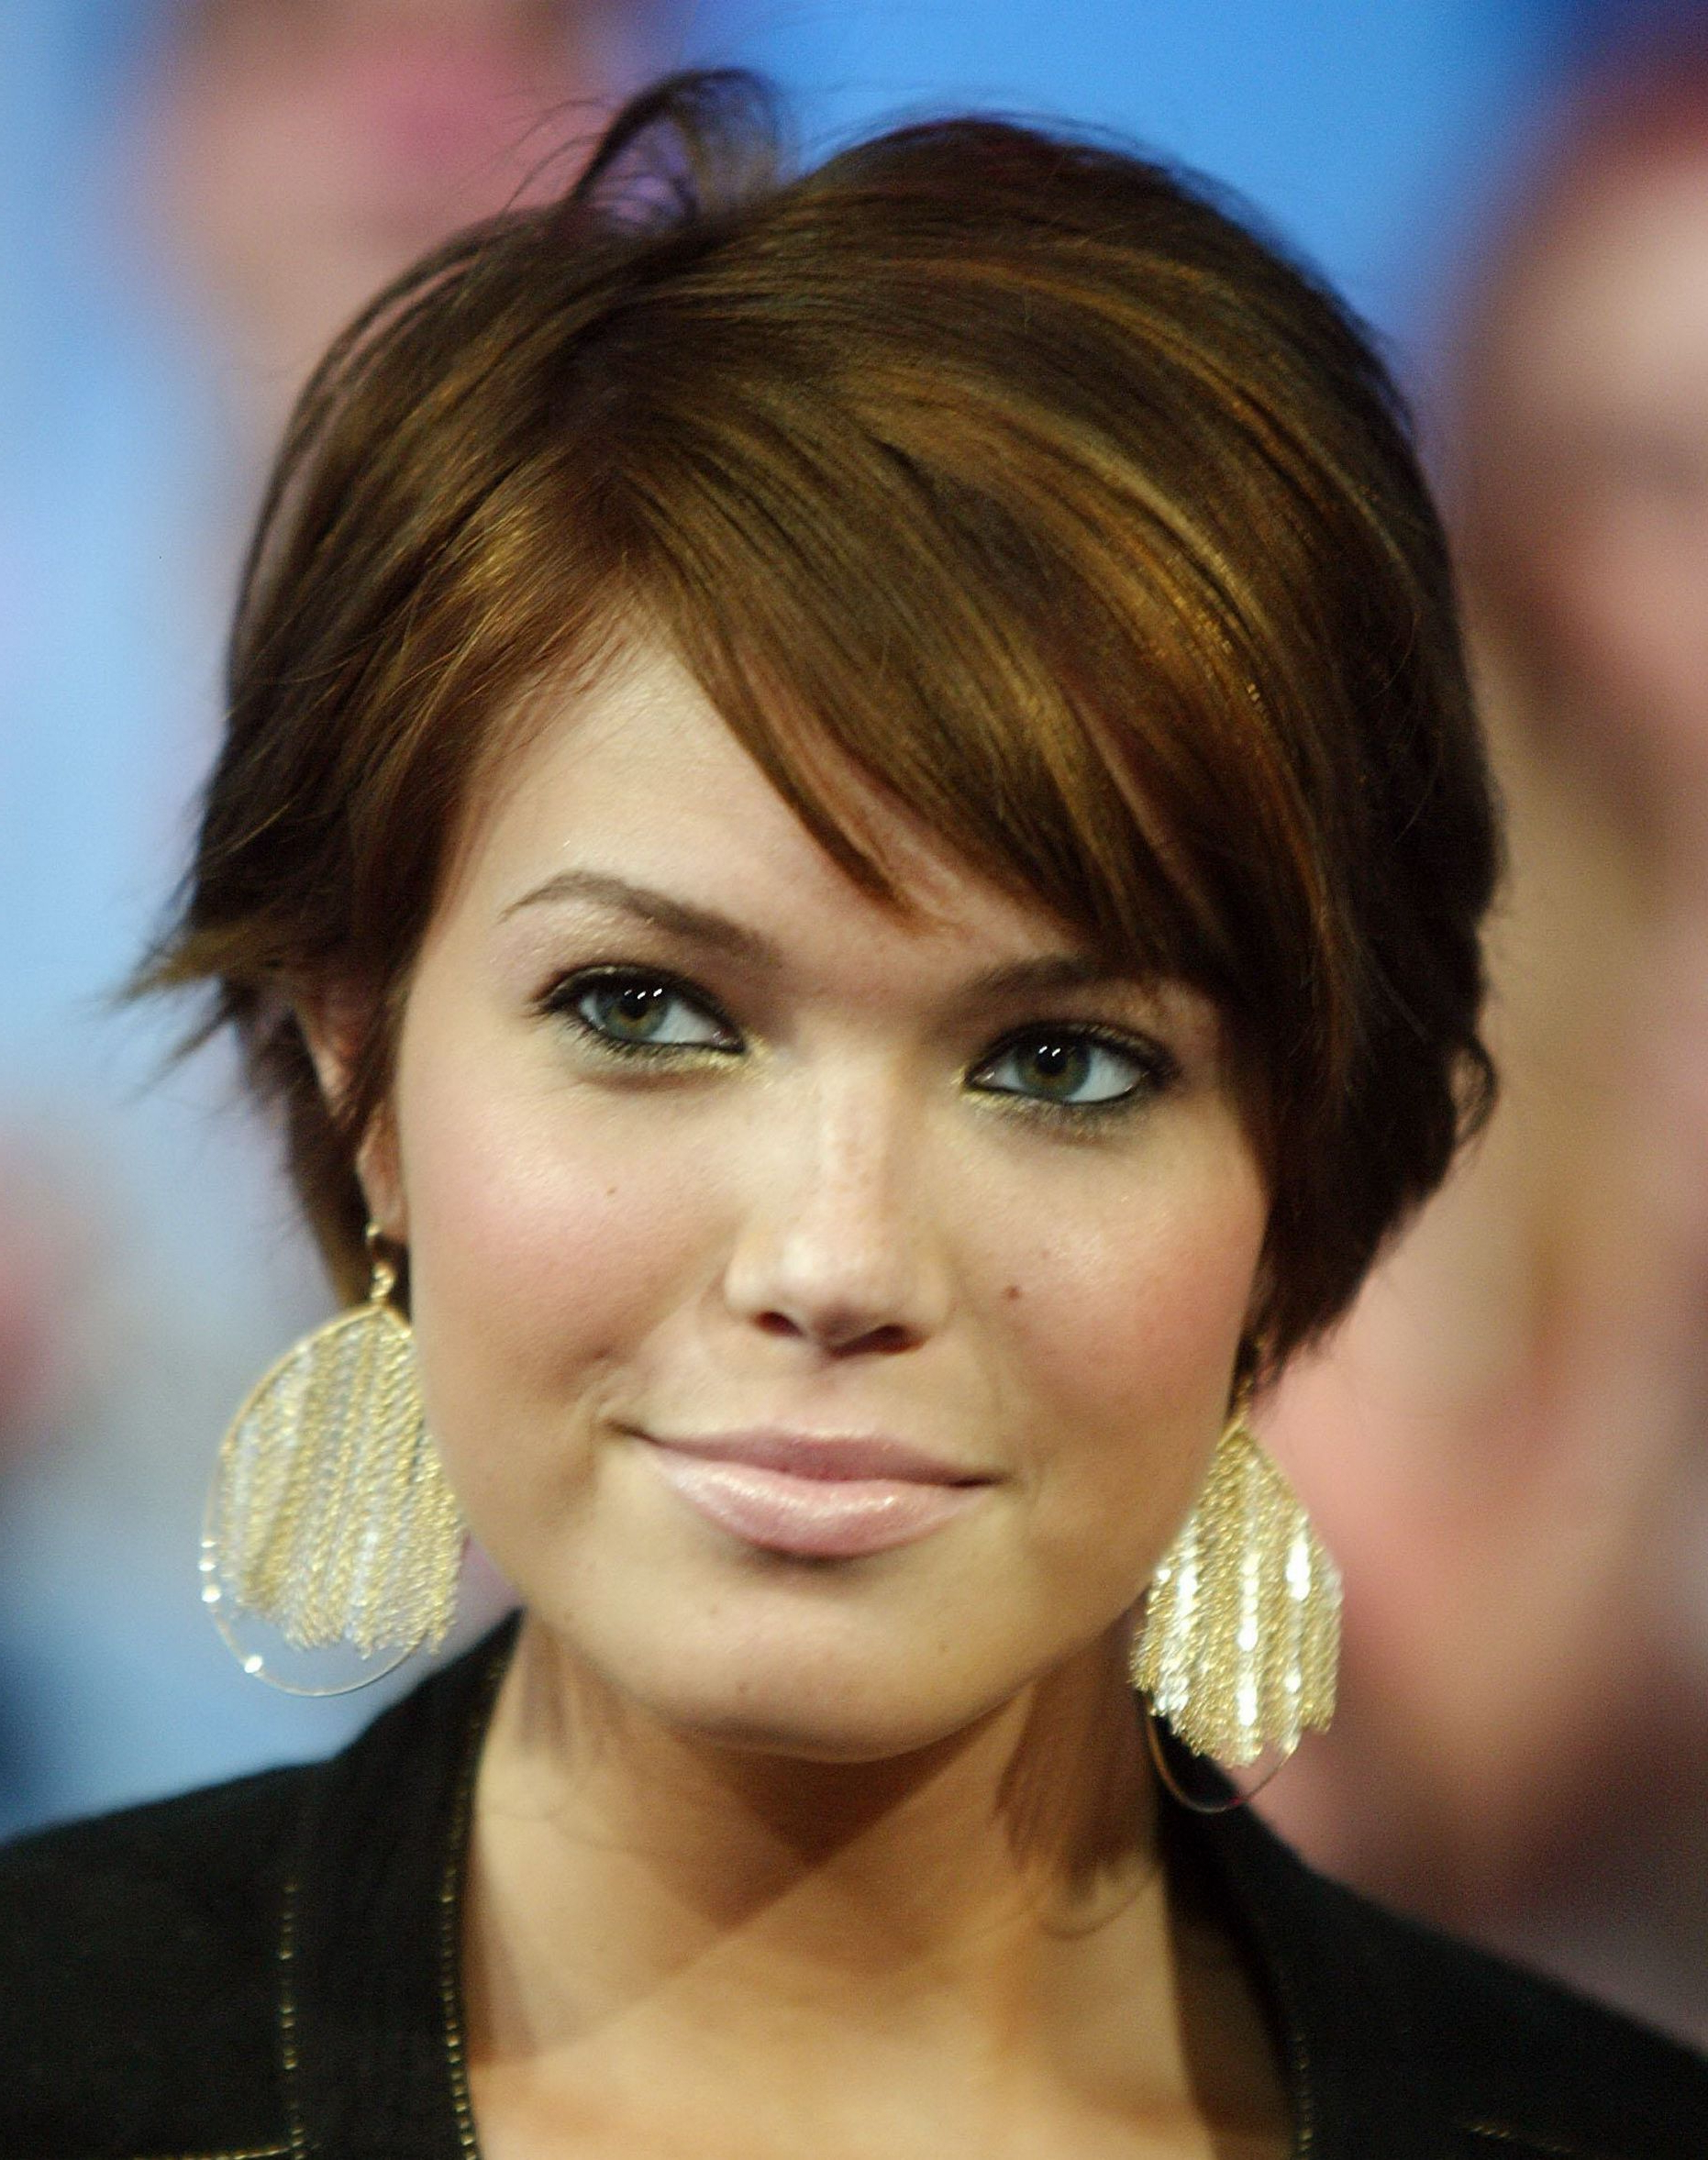 Hairstyles For Older Women With Long Faces Short Hairstyles For Throughout Short Hairstyles For Thick Hair And Long Face (View 2 of 25)